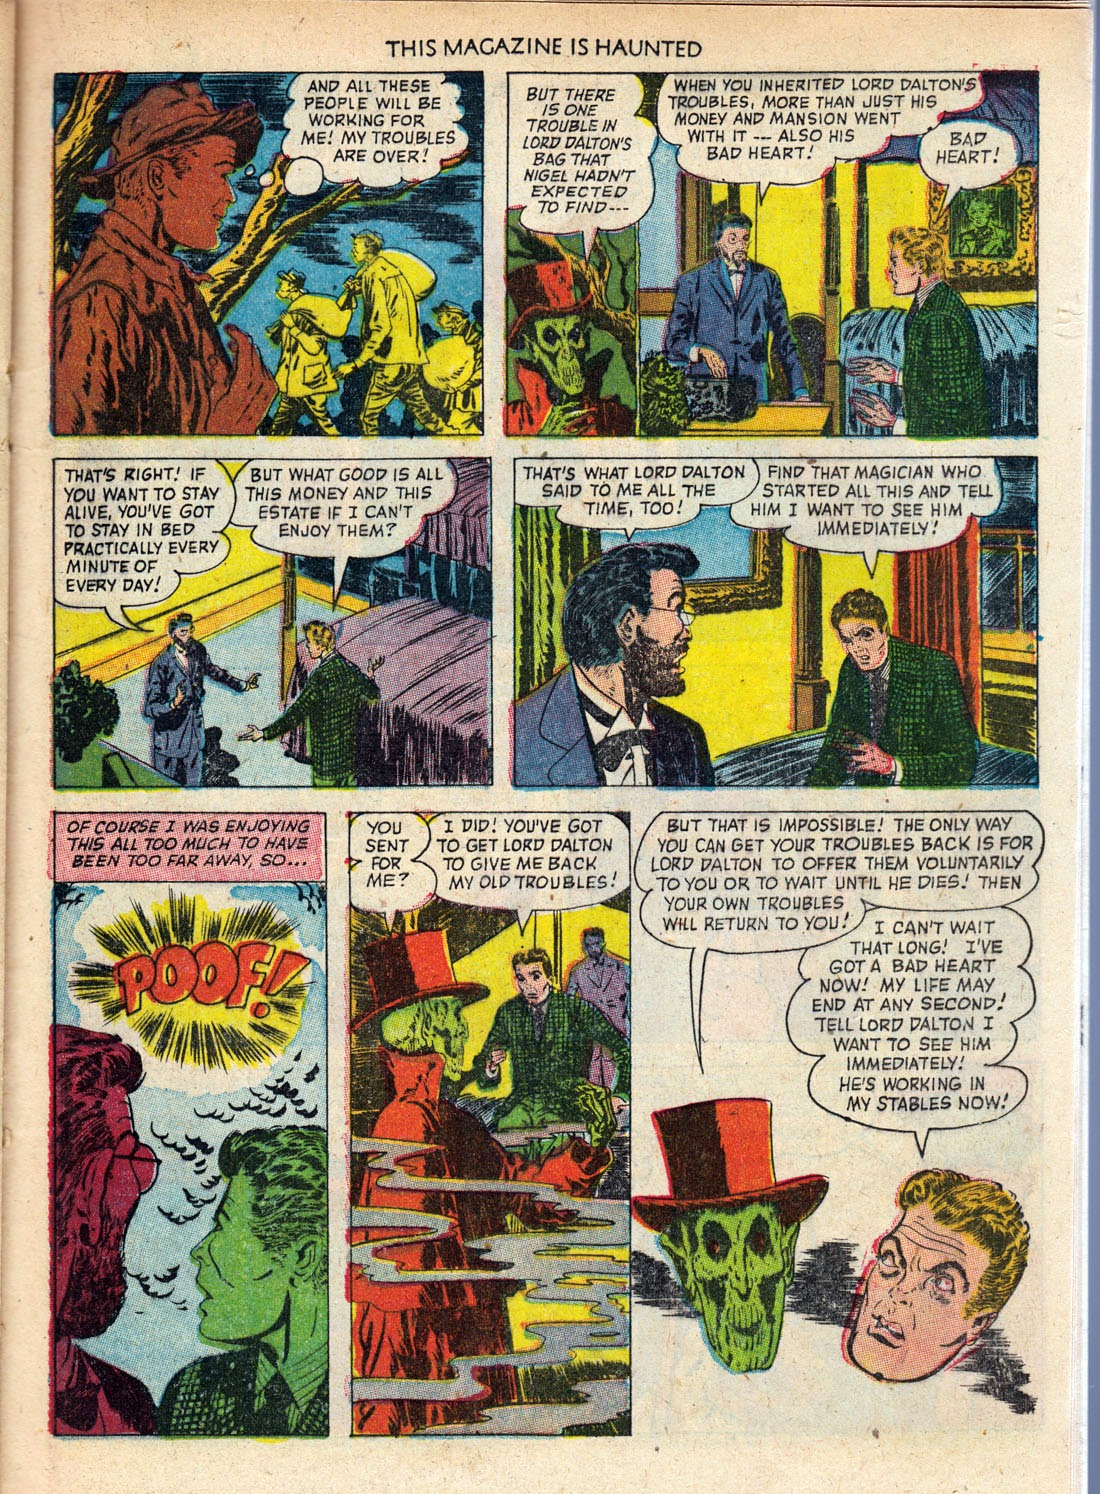 Read online This Magazine Is Haunted comic -  Issue #11 - 21